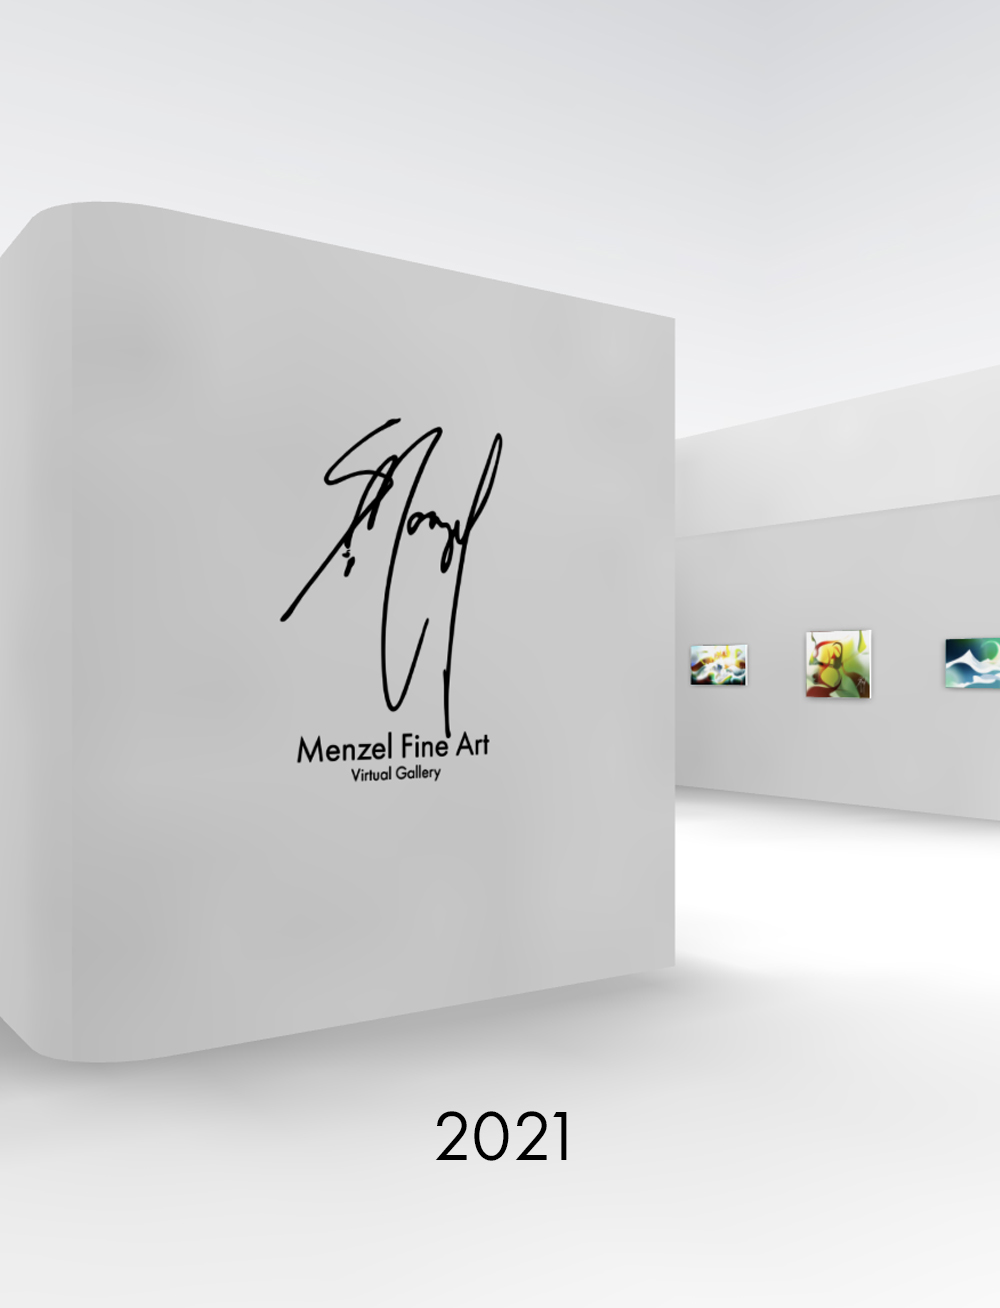 Image of my virtual gallery